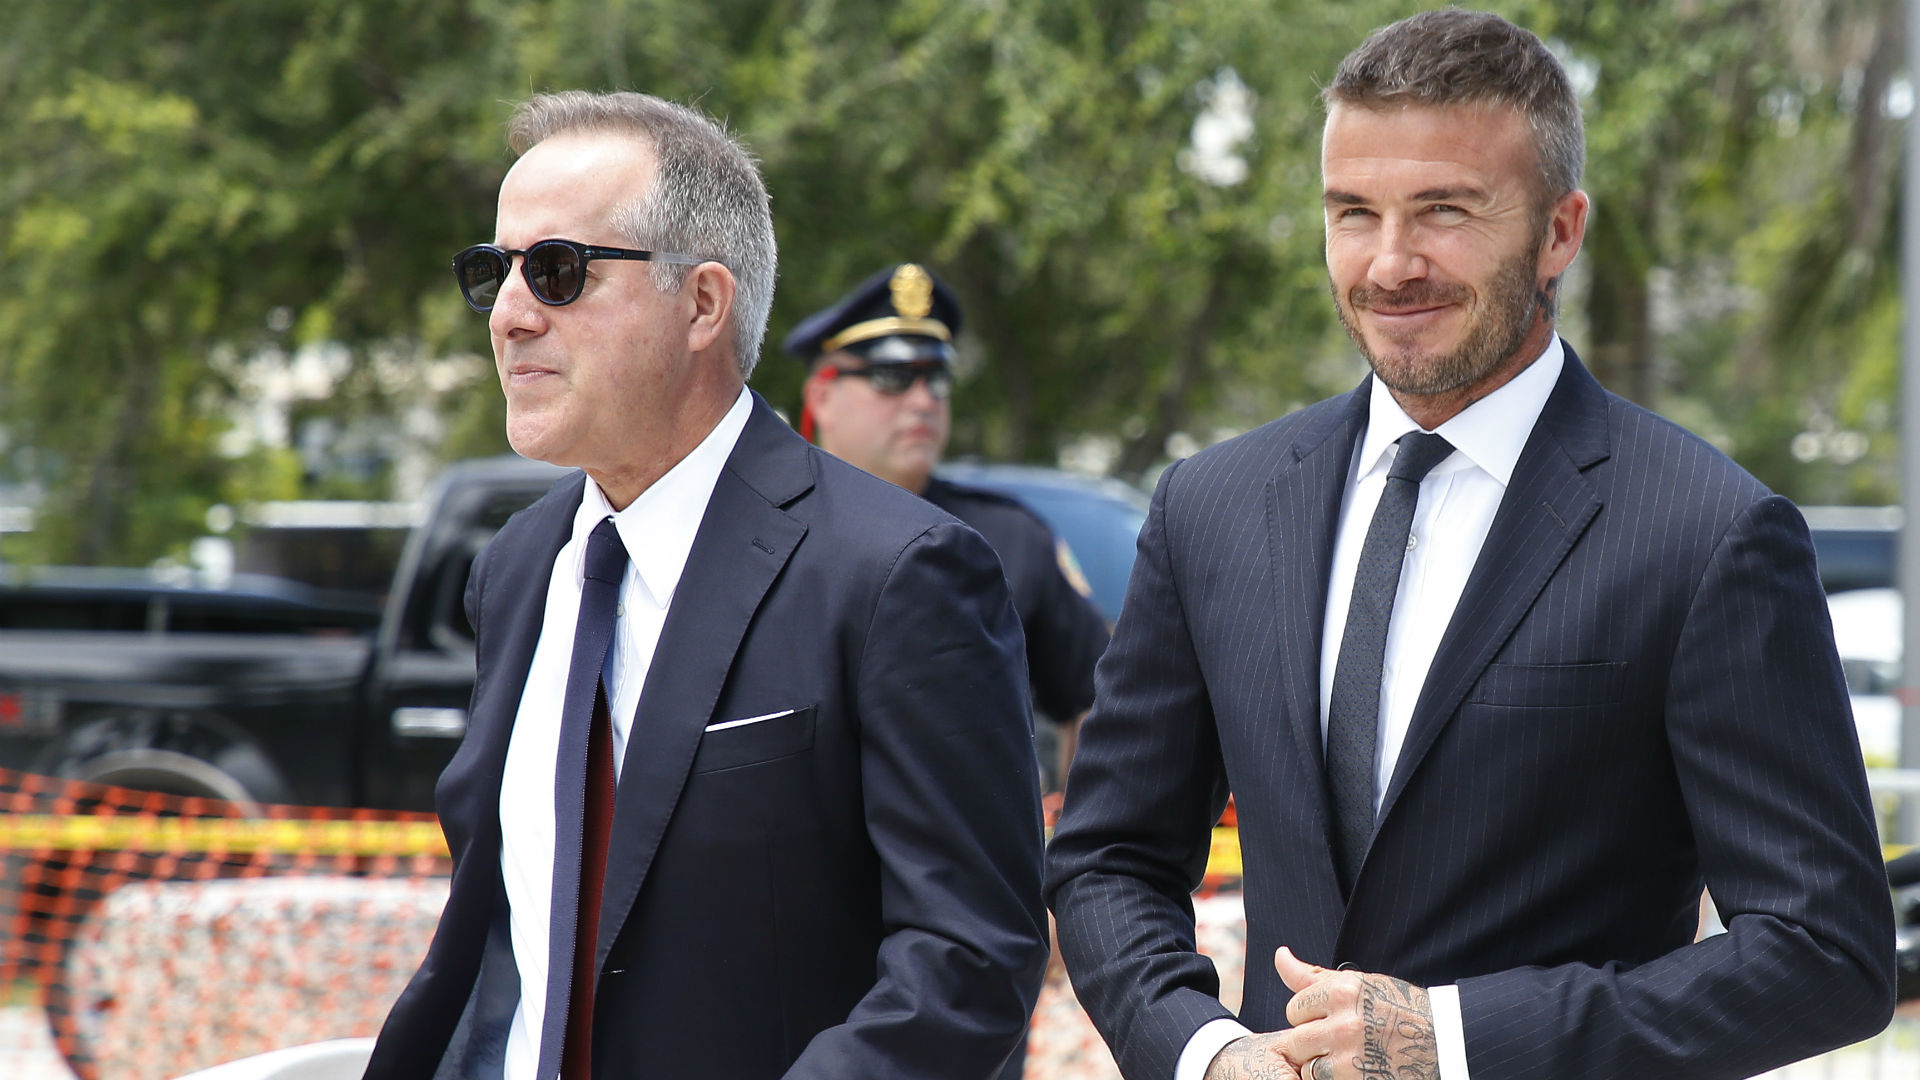 'It's all progressing well' - Beckham's Miami side lays out ambitious plan for first season in MLS